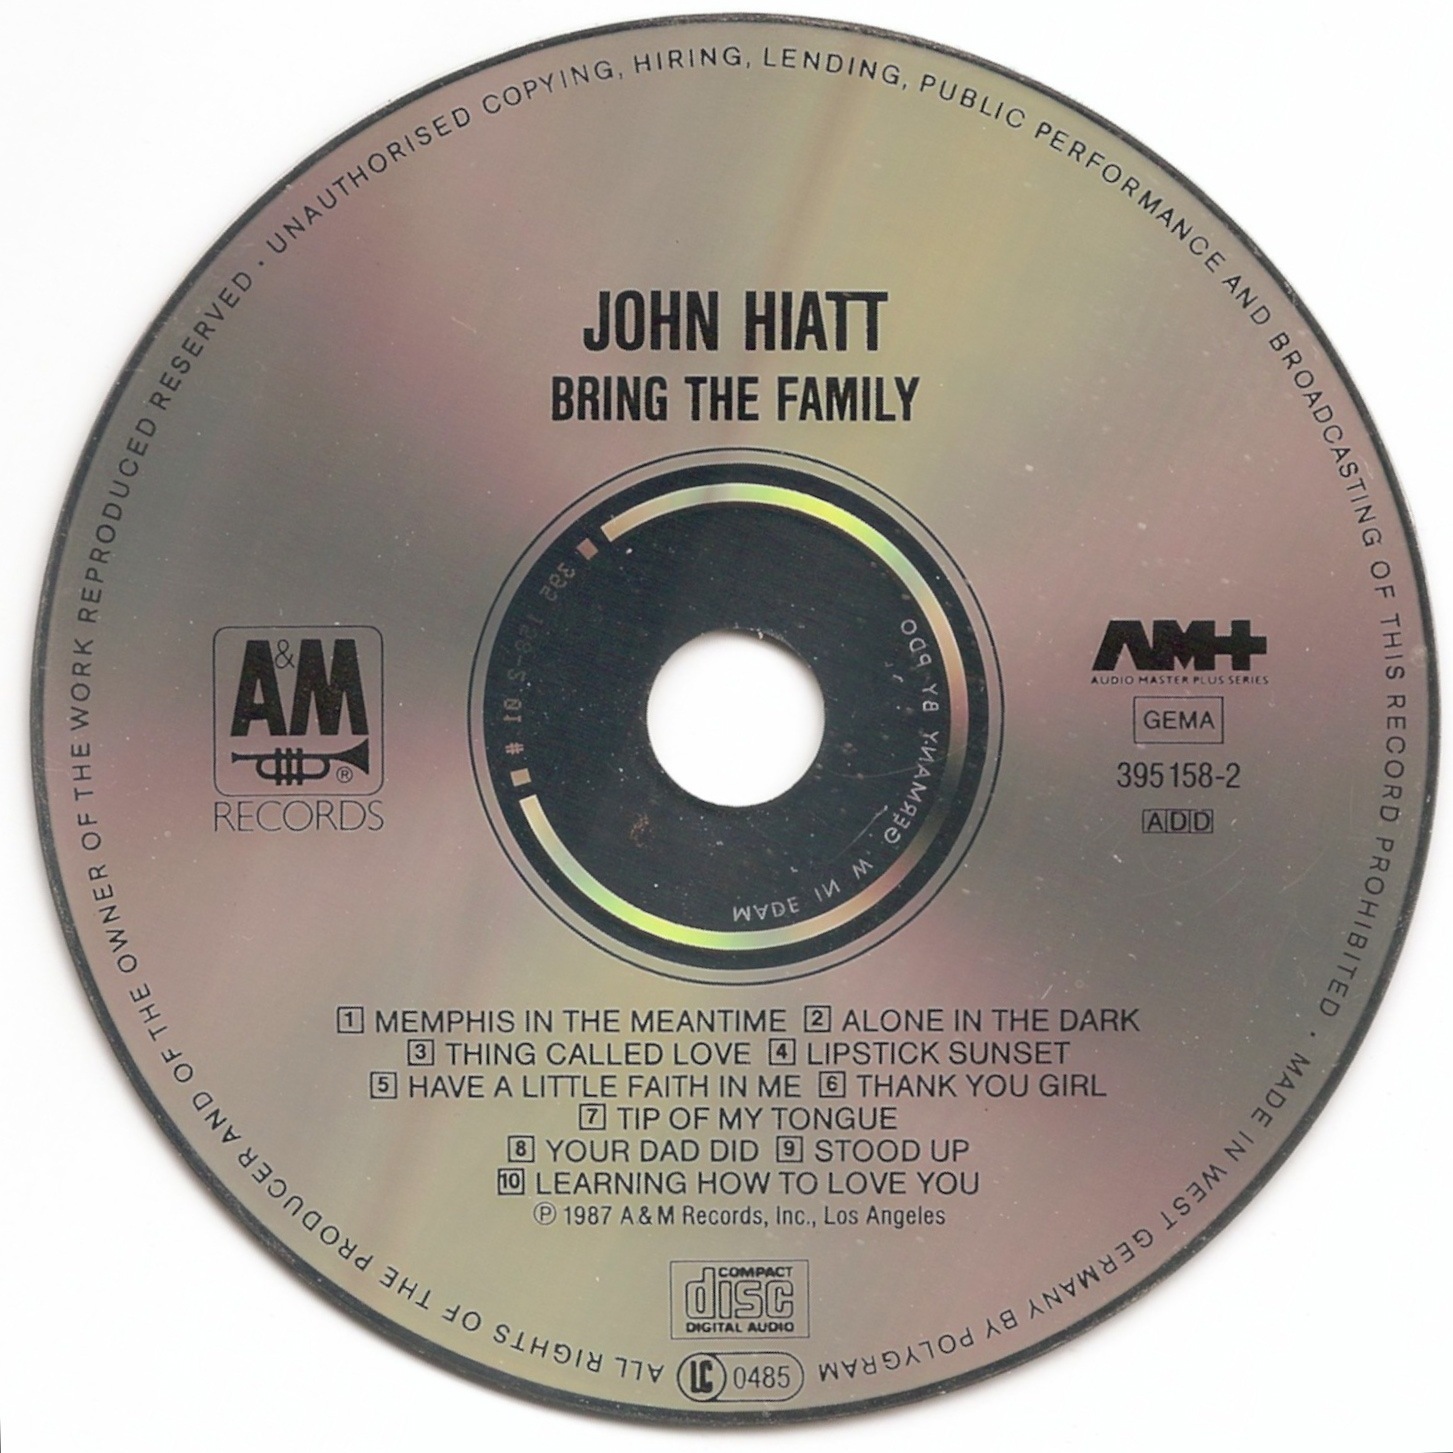 The First Pressing CD Collection: John Hiatt - Bring the ...